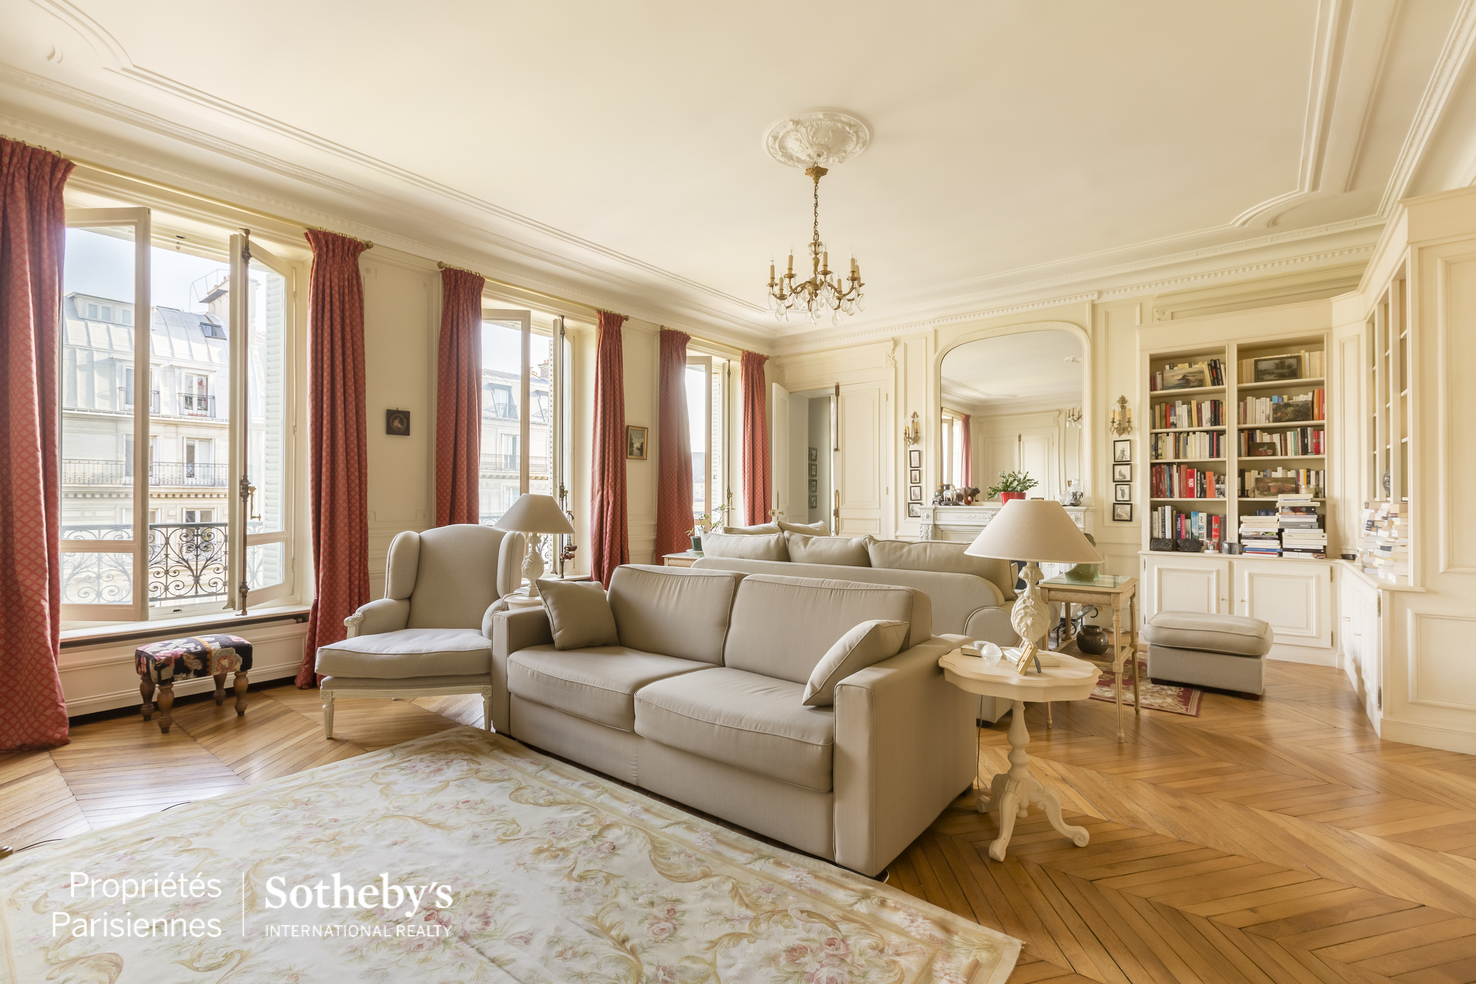 Property For Sale at Saint-Germain-des-Prés